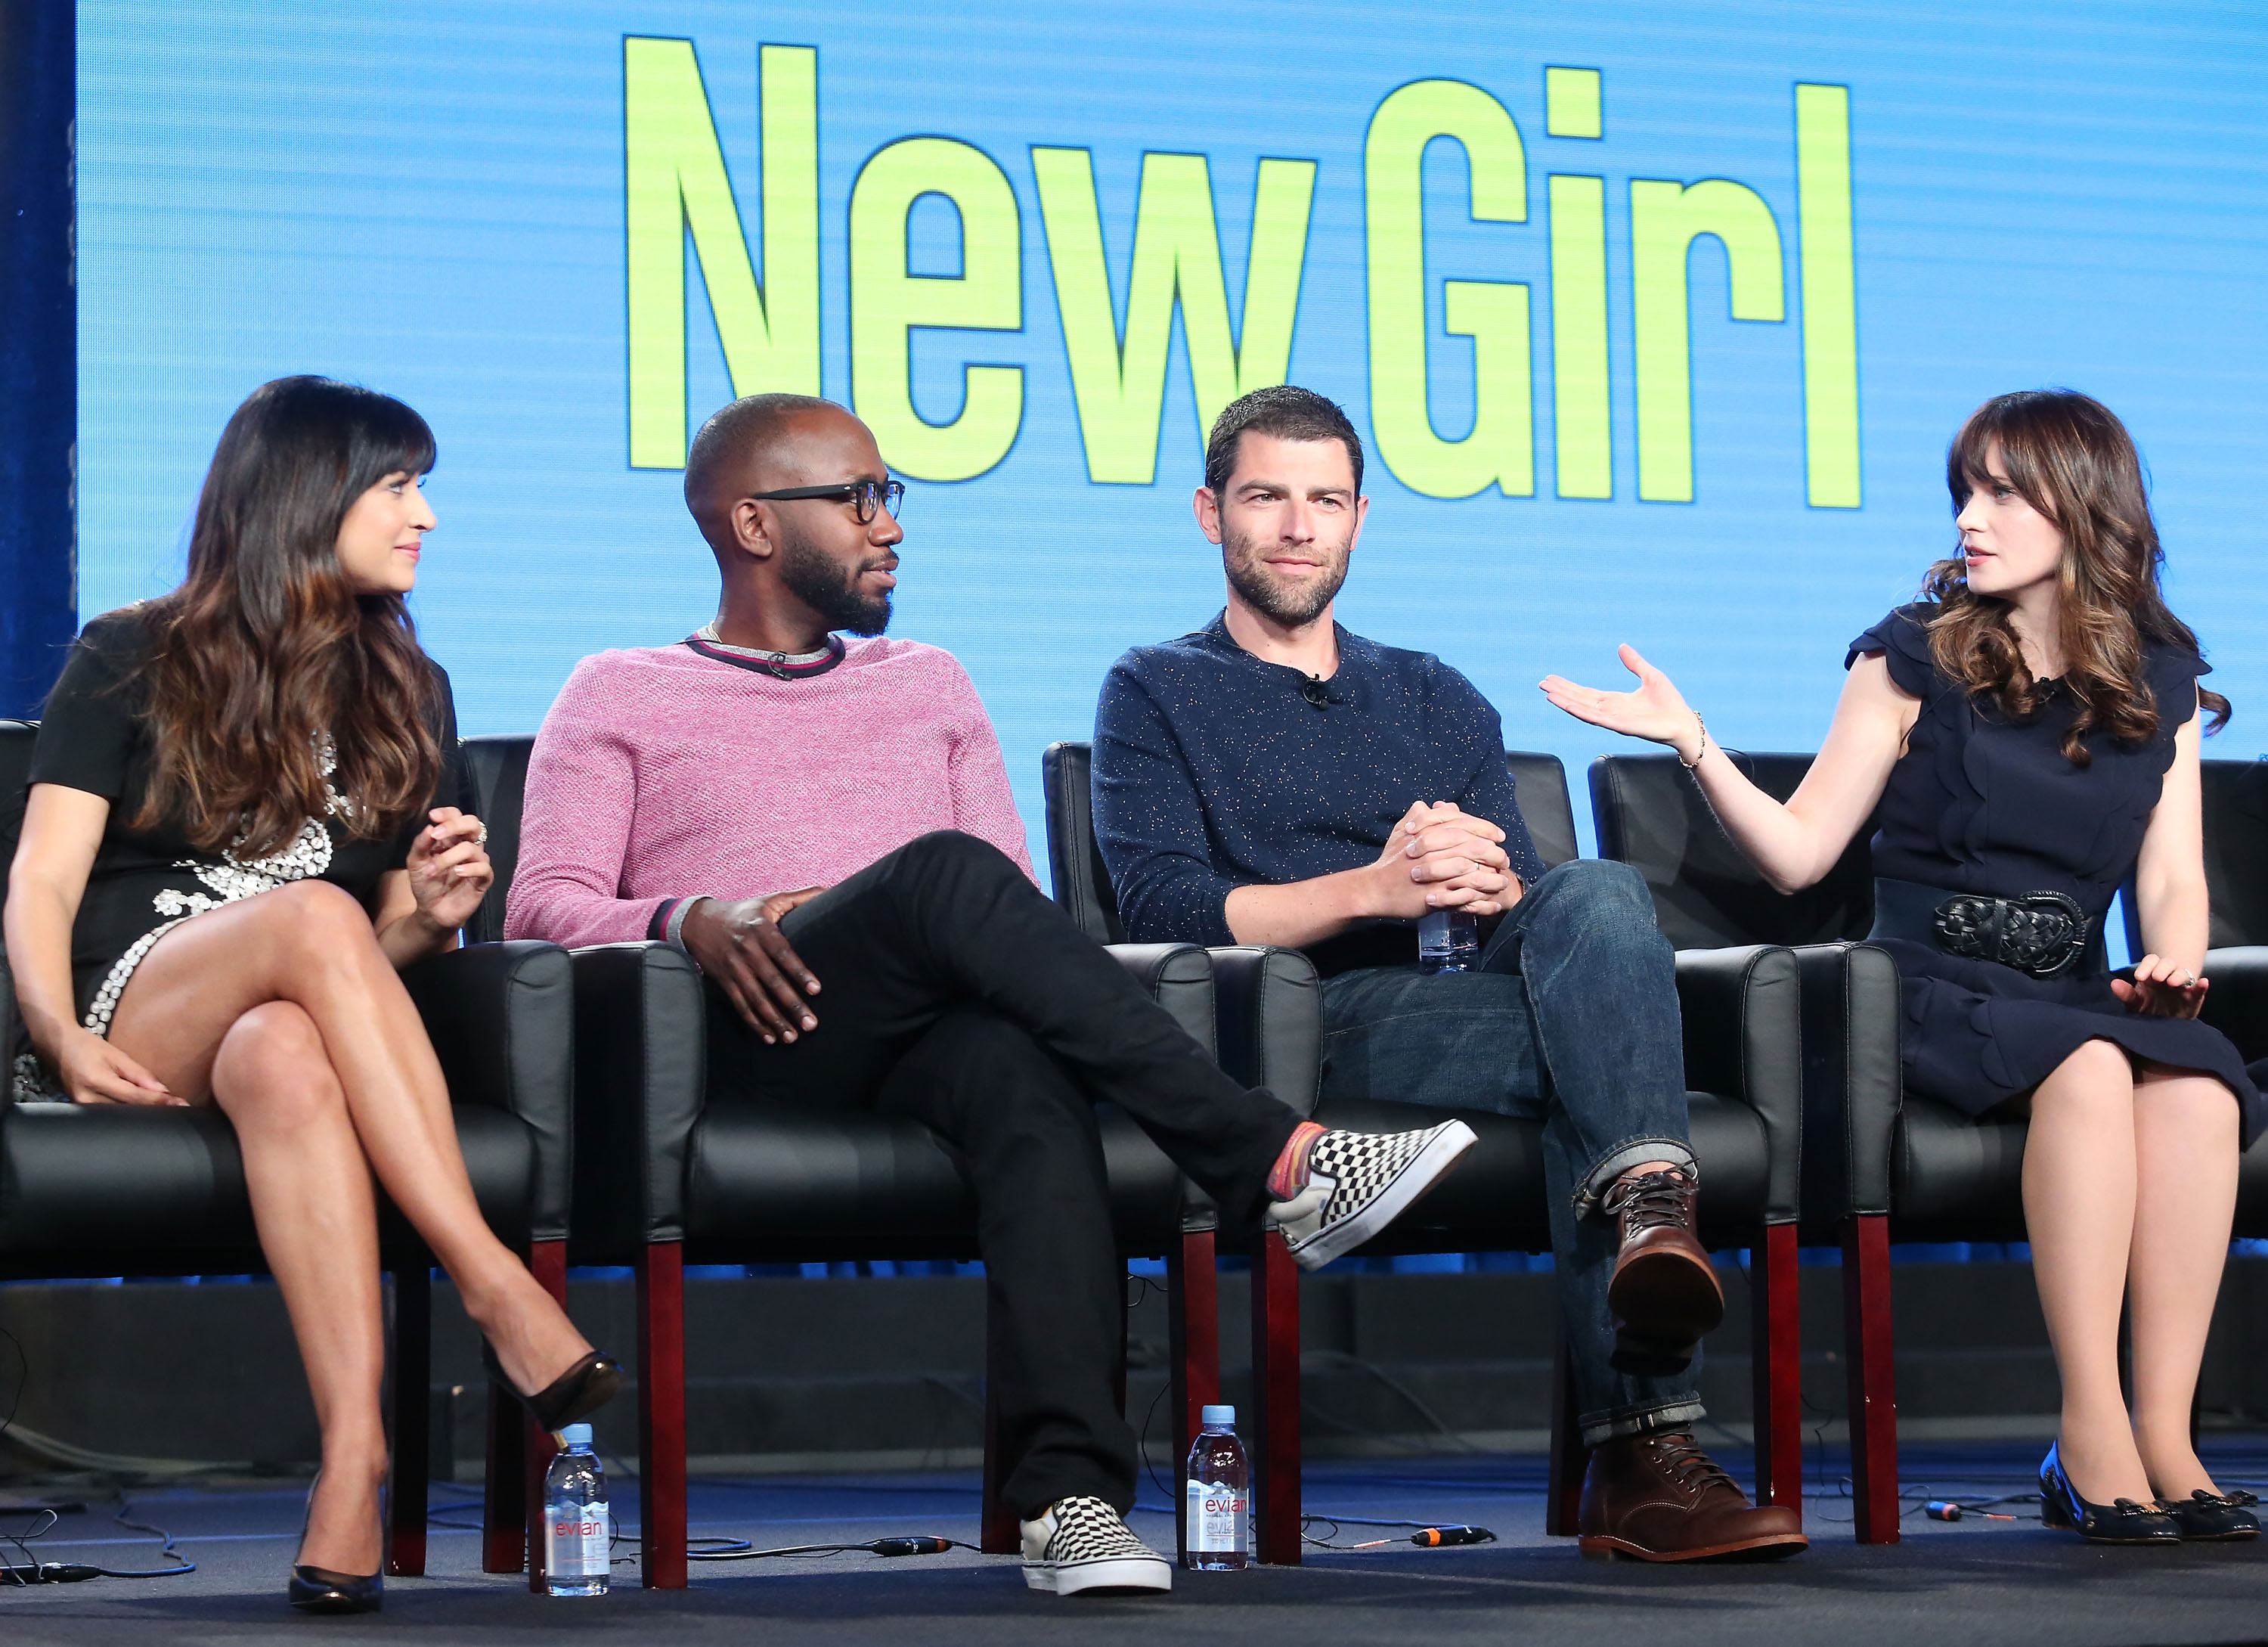 PASADENA, CA - JANUARY 04:  (L-R) Actors Hannah Simone, Lamorne Morris, Max Greenfield and Zooey Deschanel of the television show New Girl speaks onstage during the FOX portion of the 2018 Winter Television Critics Association Press Tour at The Langham Huntington, Pasadena on January 4, 2018 in Pasadena, California.  (Photo by Frederick M. Brown/Getty Images)